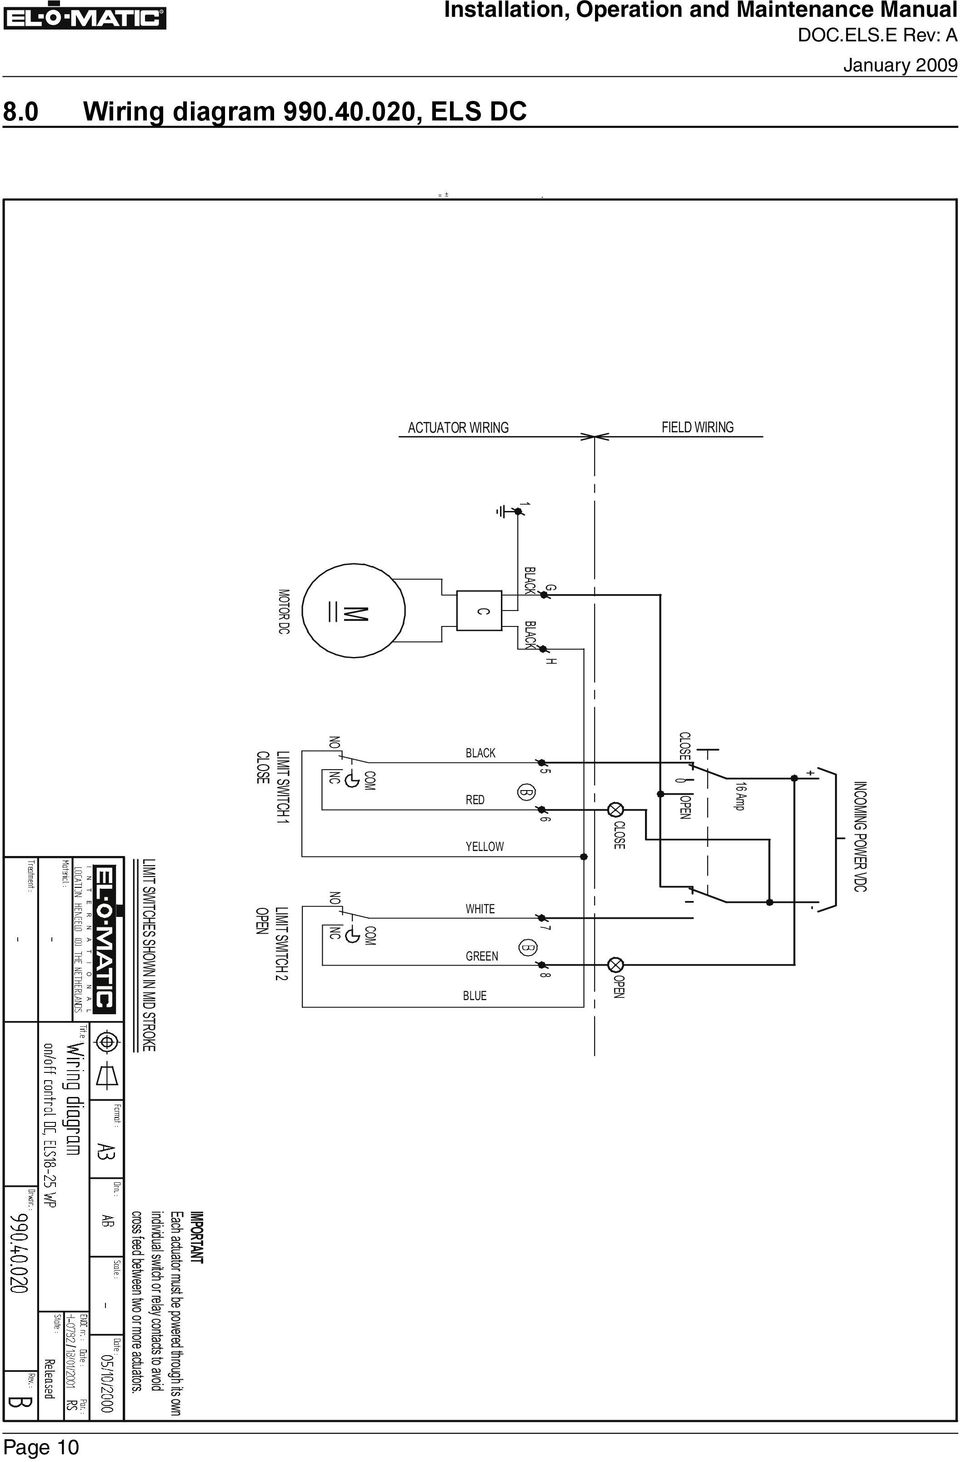 hight resolution of n a t i o n a l limit switches shown in mid stroke limit switch 1 close limit switch 2 open no 11 9 0 wiring diagram